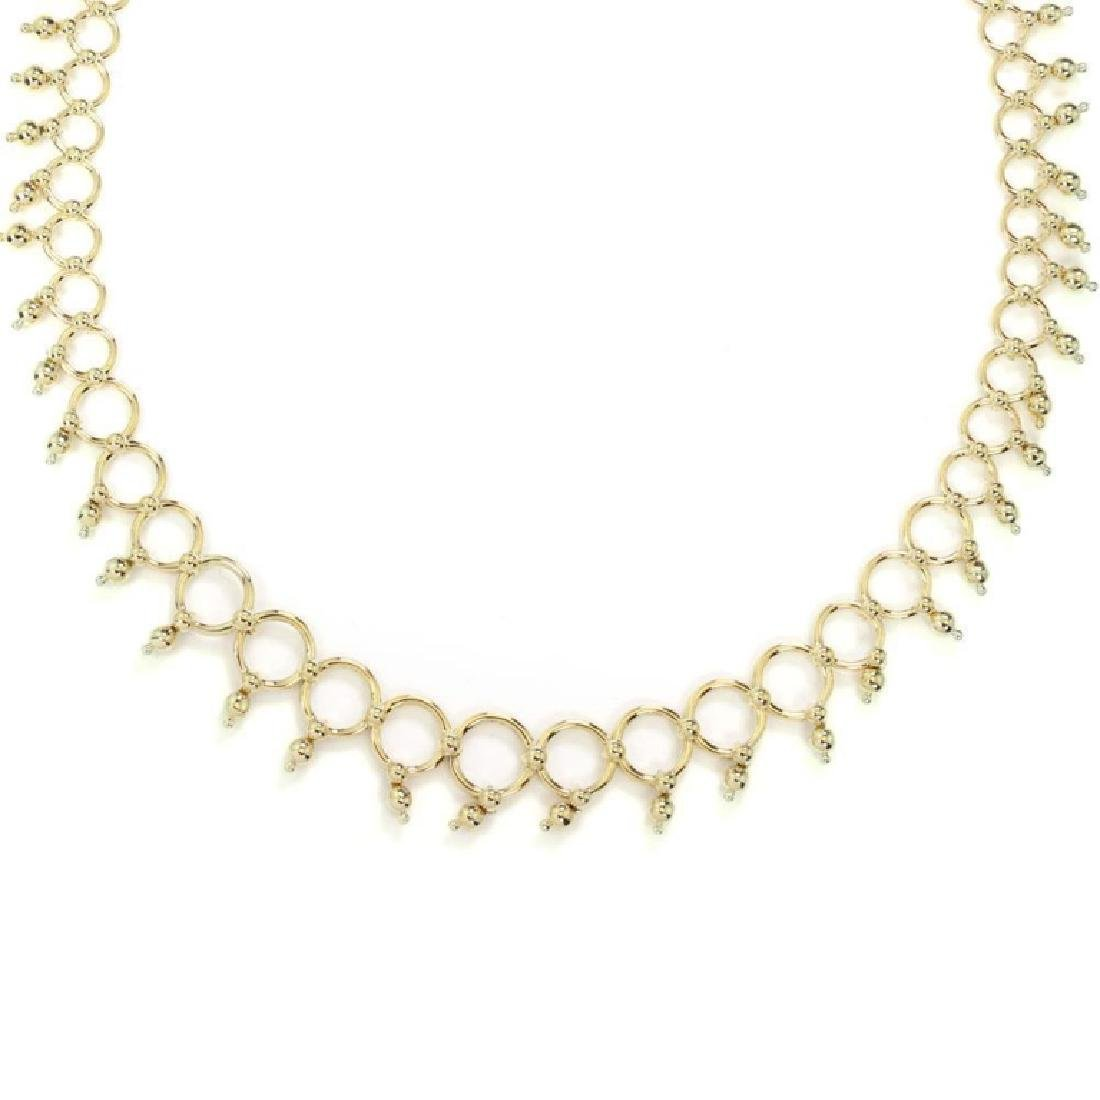 Tiffany & Co. 18k Gold Circle Bead Link Necklace